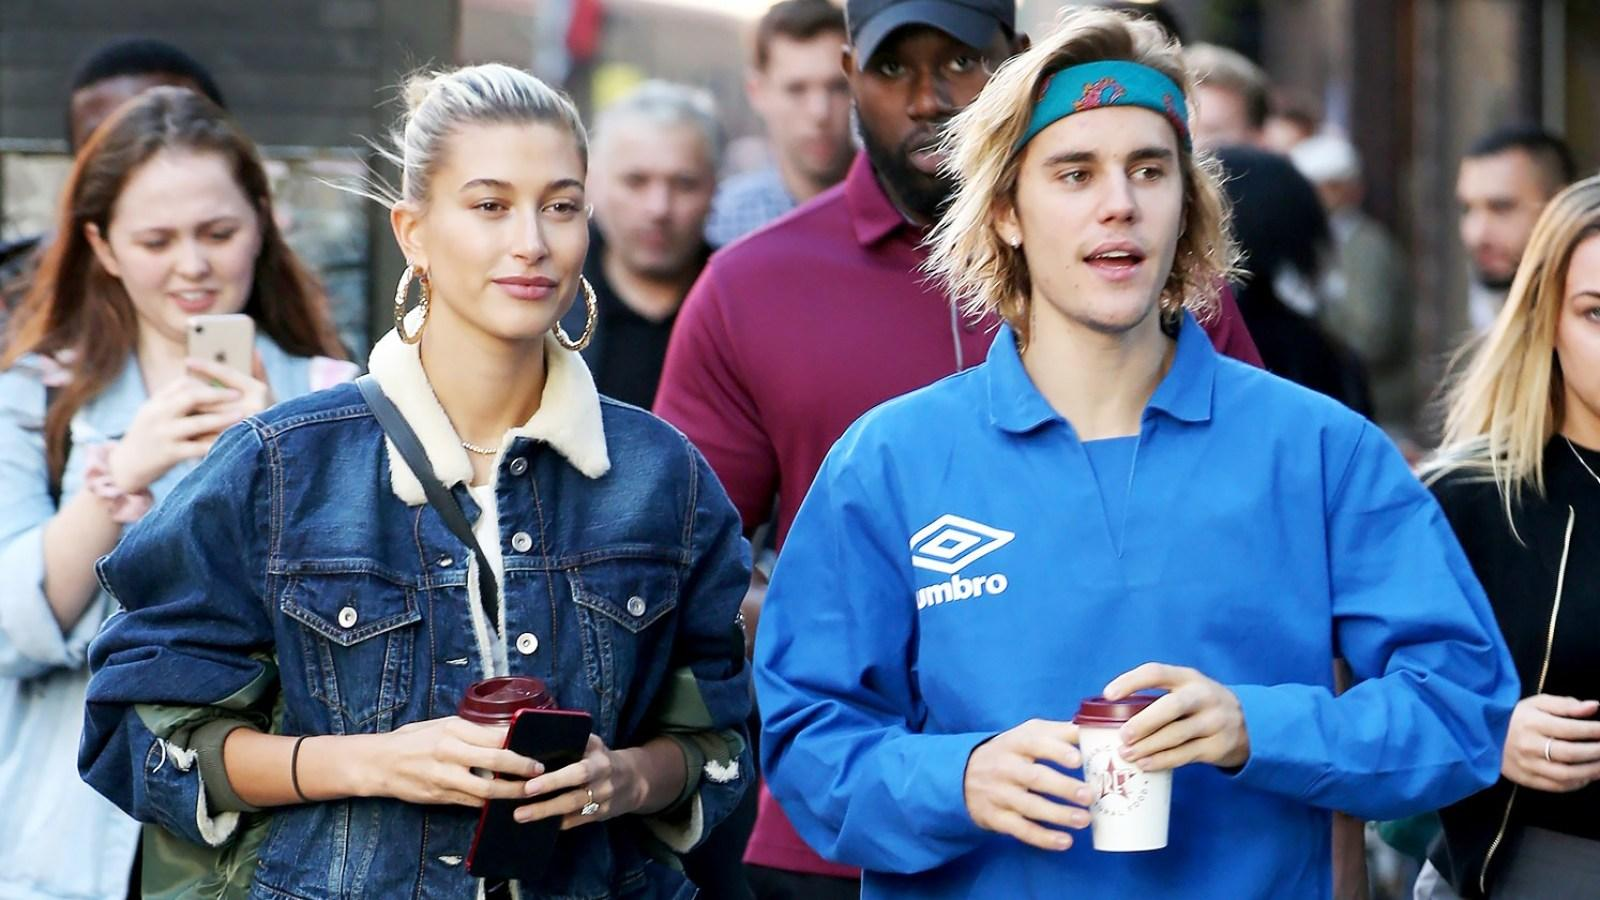 Justin Bieber Can't Believe How Beautiful Wife Hailey Baldwin Is With No Makeup On - Check Out The Pic!